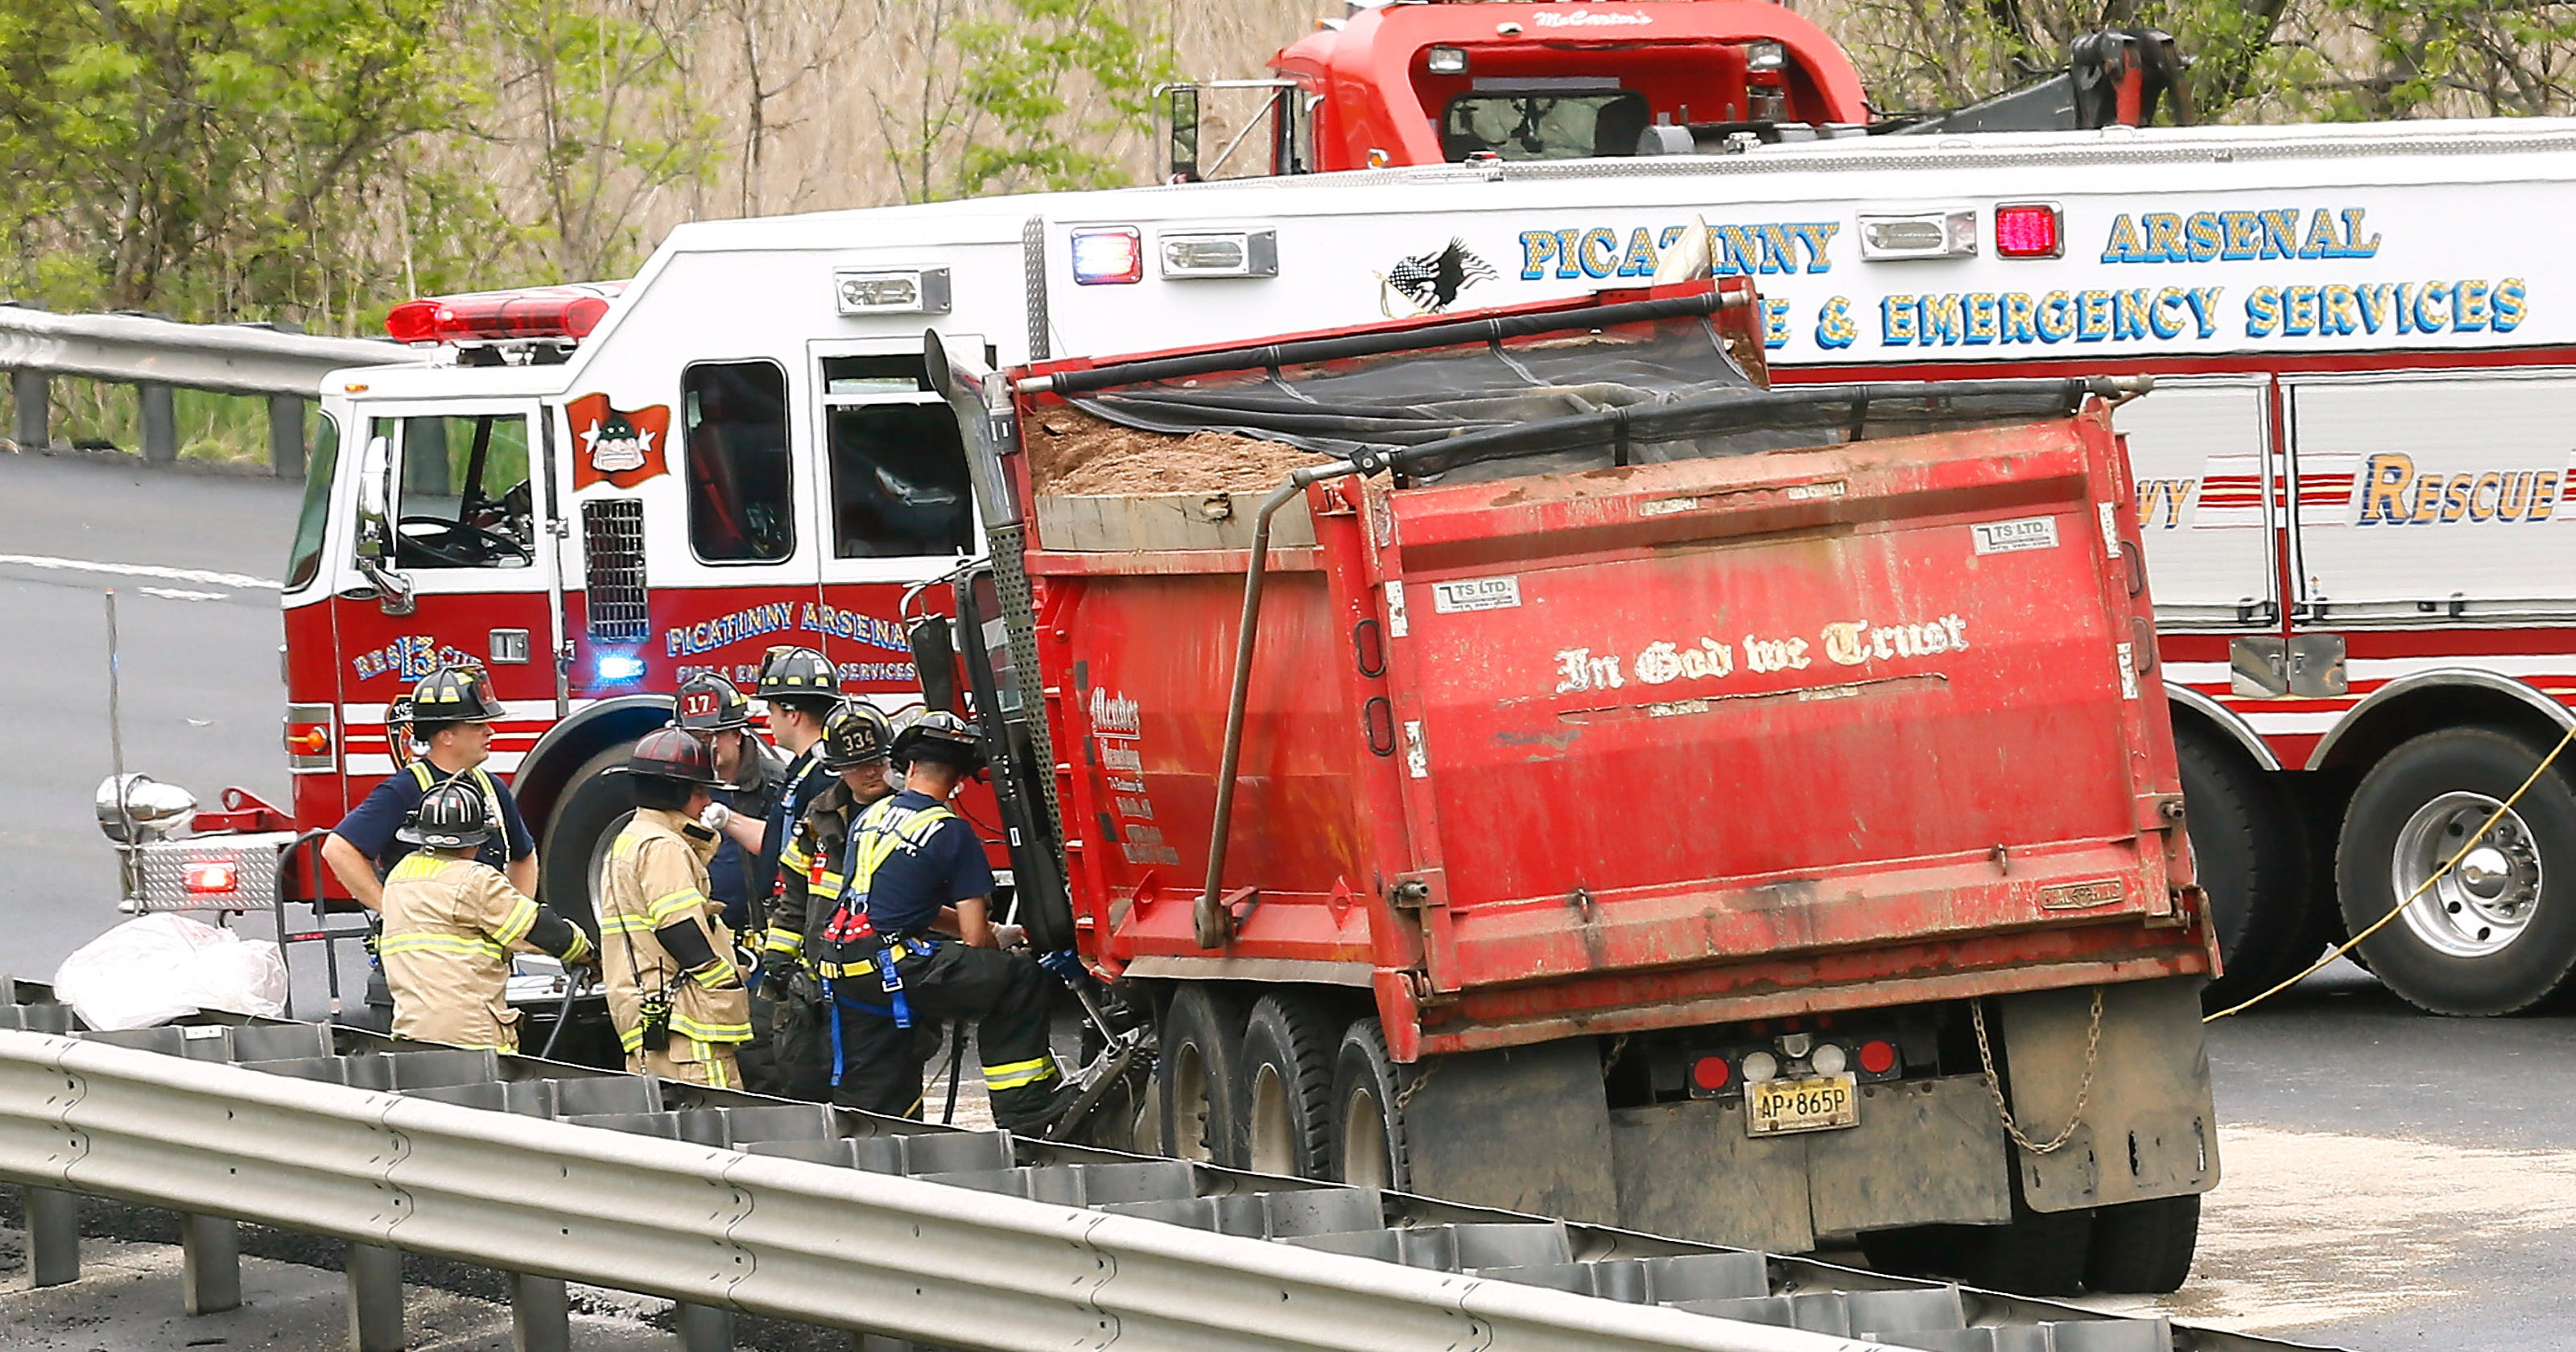 Paramus school bus accident: Truck in another crash 2 years ago